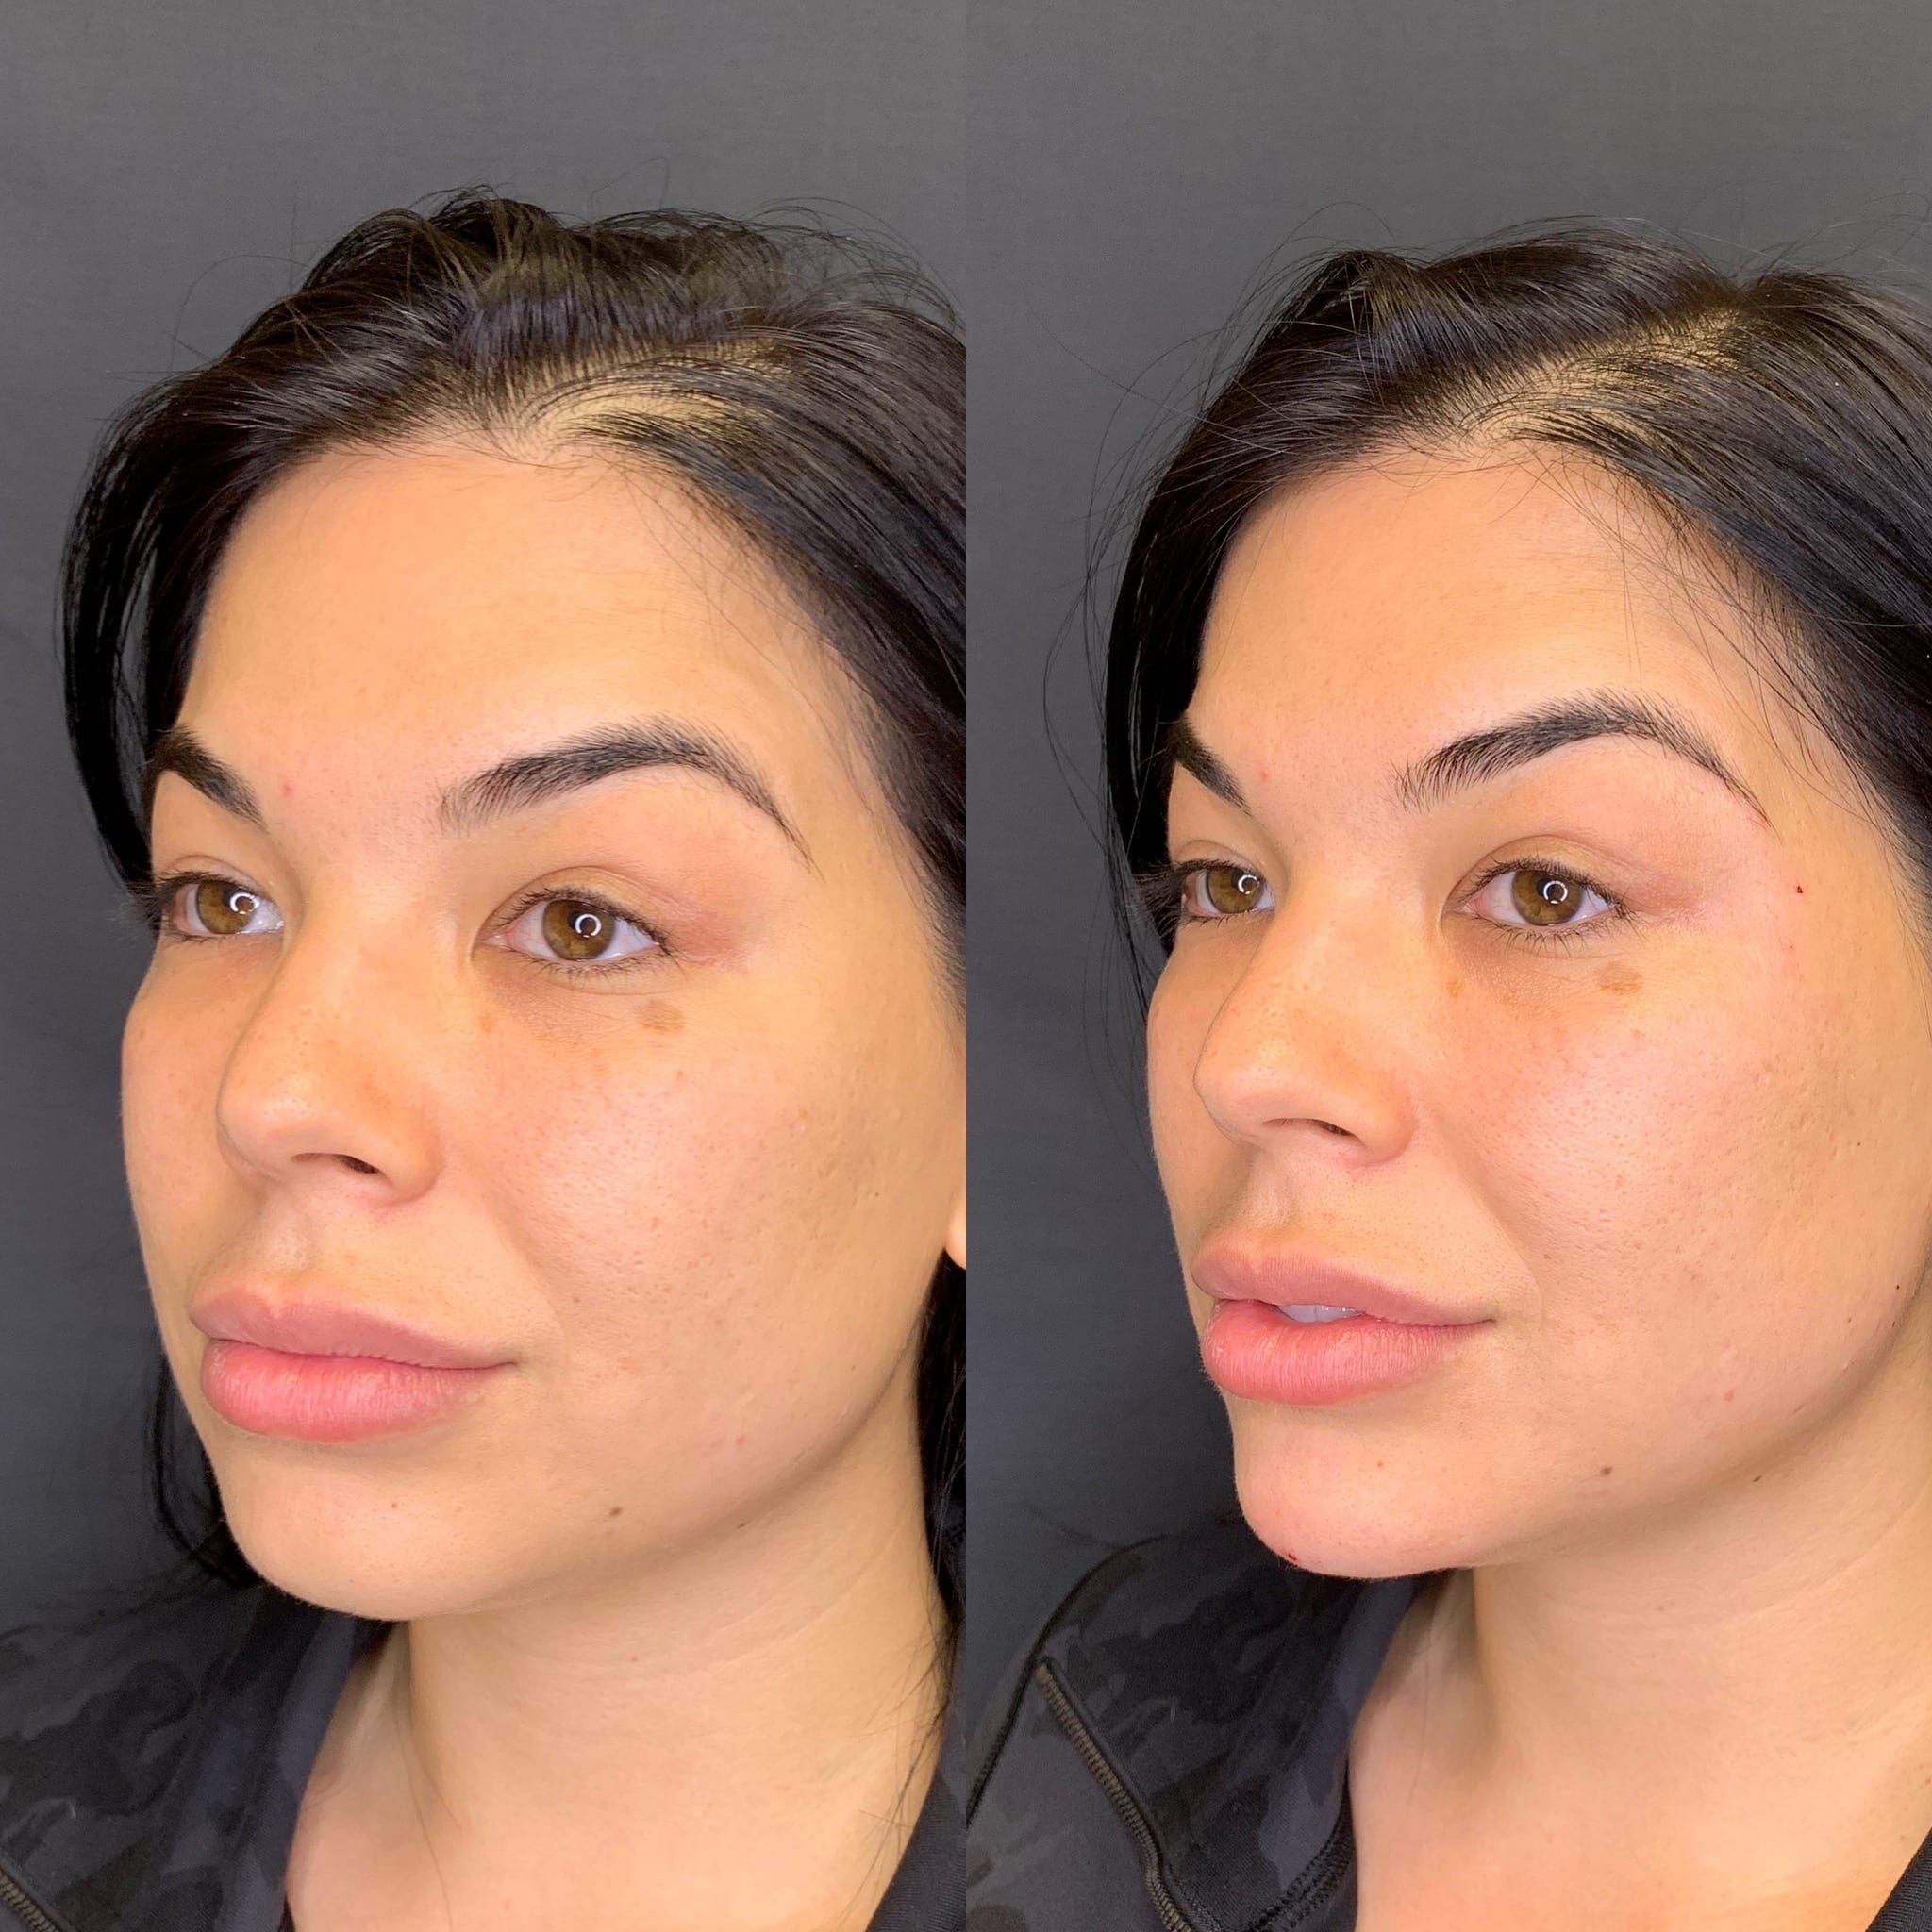 27 y/o Asian F immediately after injecting 1 full syringe of voluma to her chin for better projection, contour and definition.